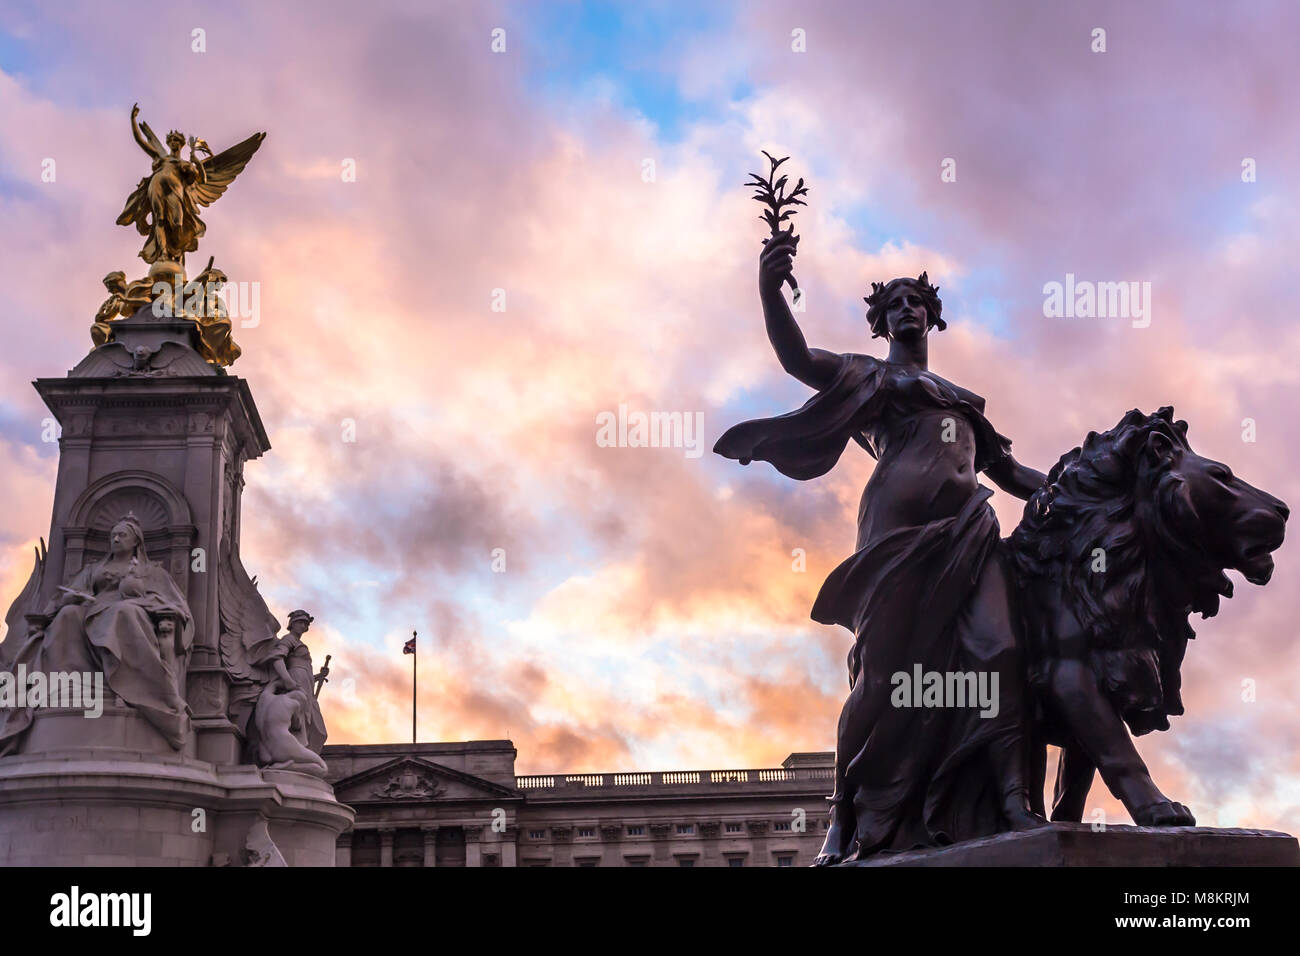 The Queen Victoria Memorial. The Queen Victoria Memorial is located in front of Buckingham Palace. - Stock Image